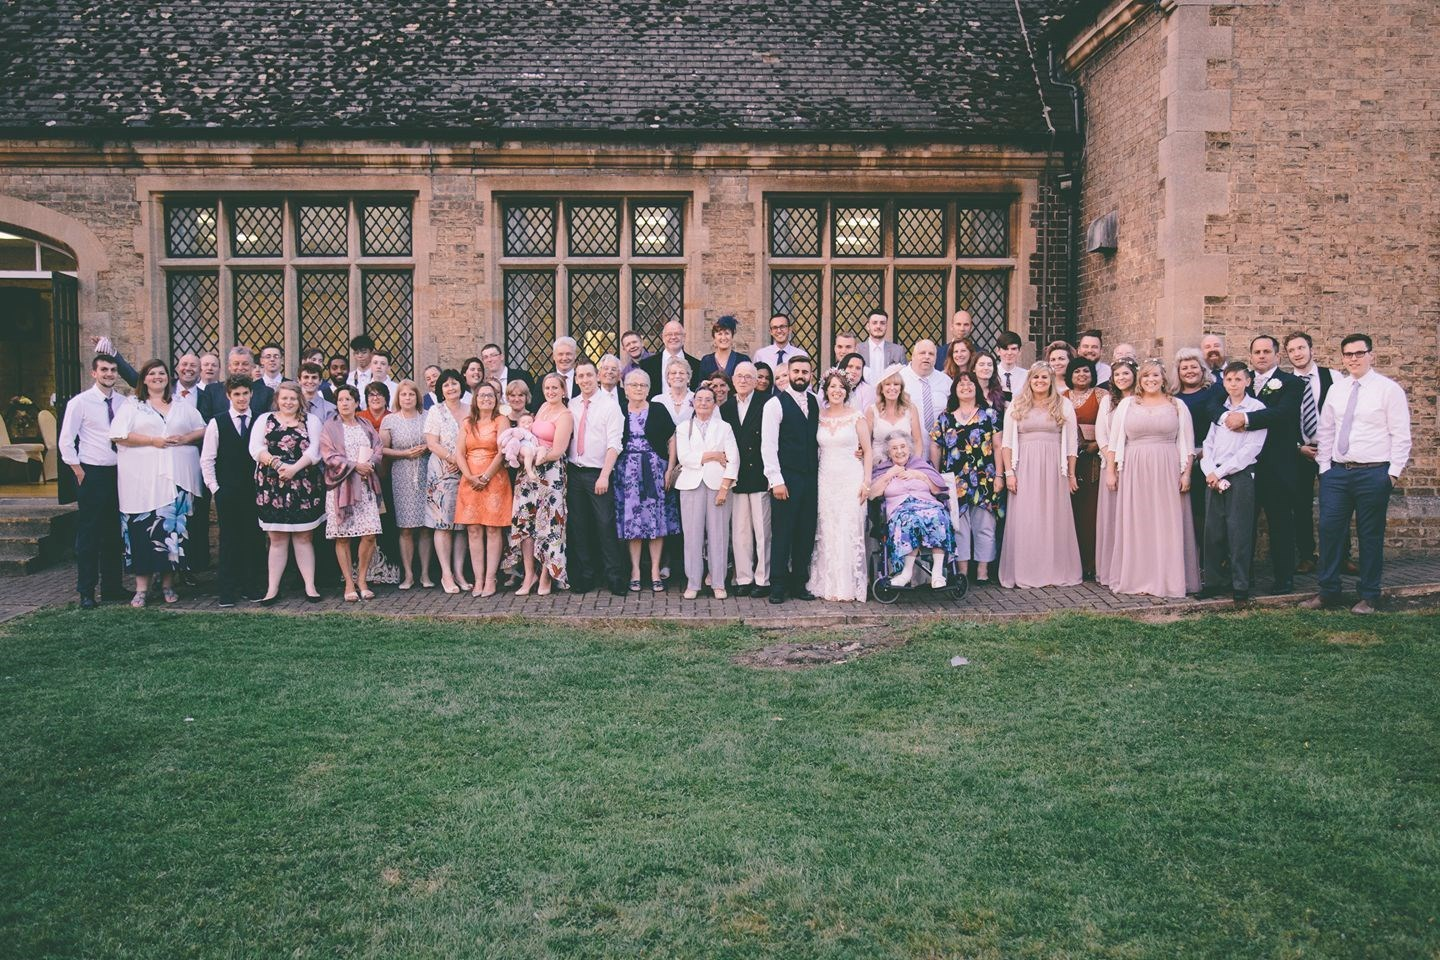 Chris and Esther's wedding. Jackie and stuart right in the centre x